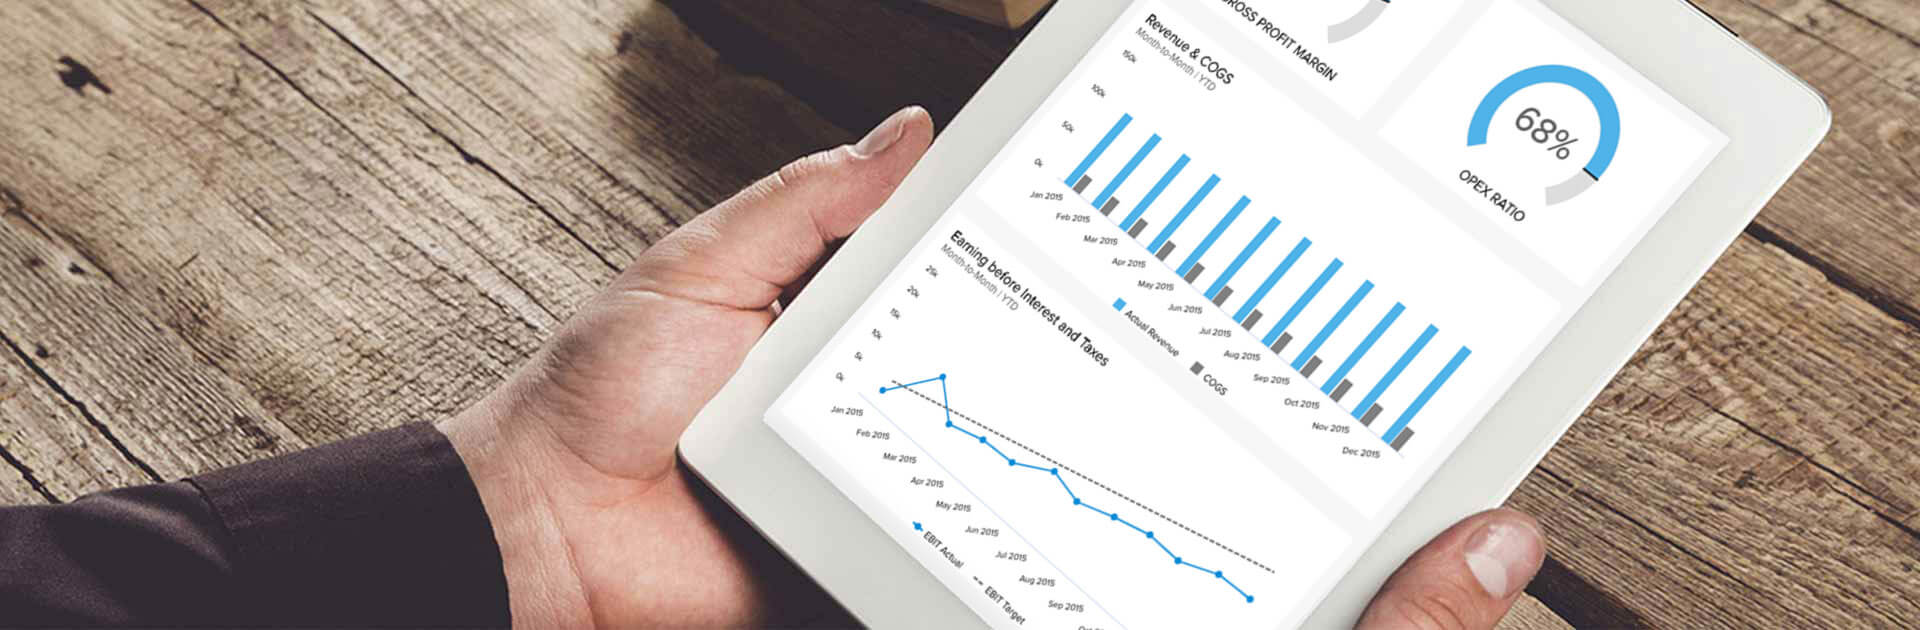 Online Data Analysis Tools - Easily Analyse Your Data Online